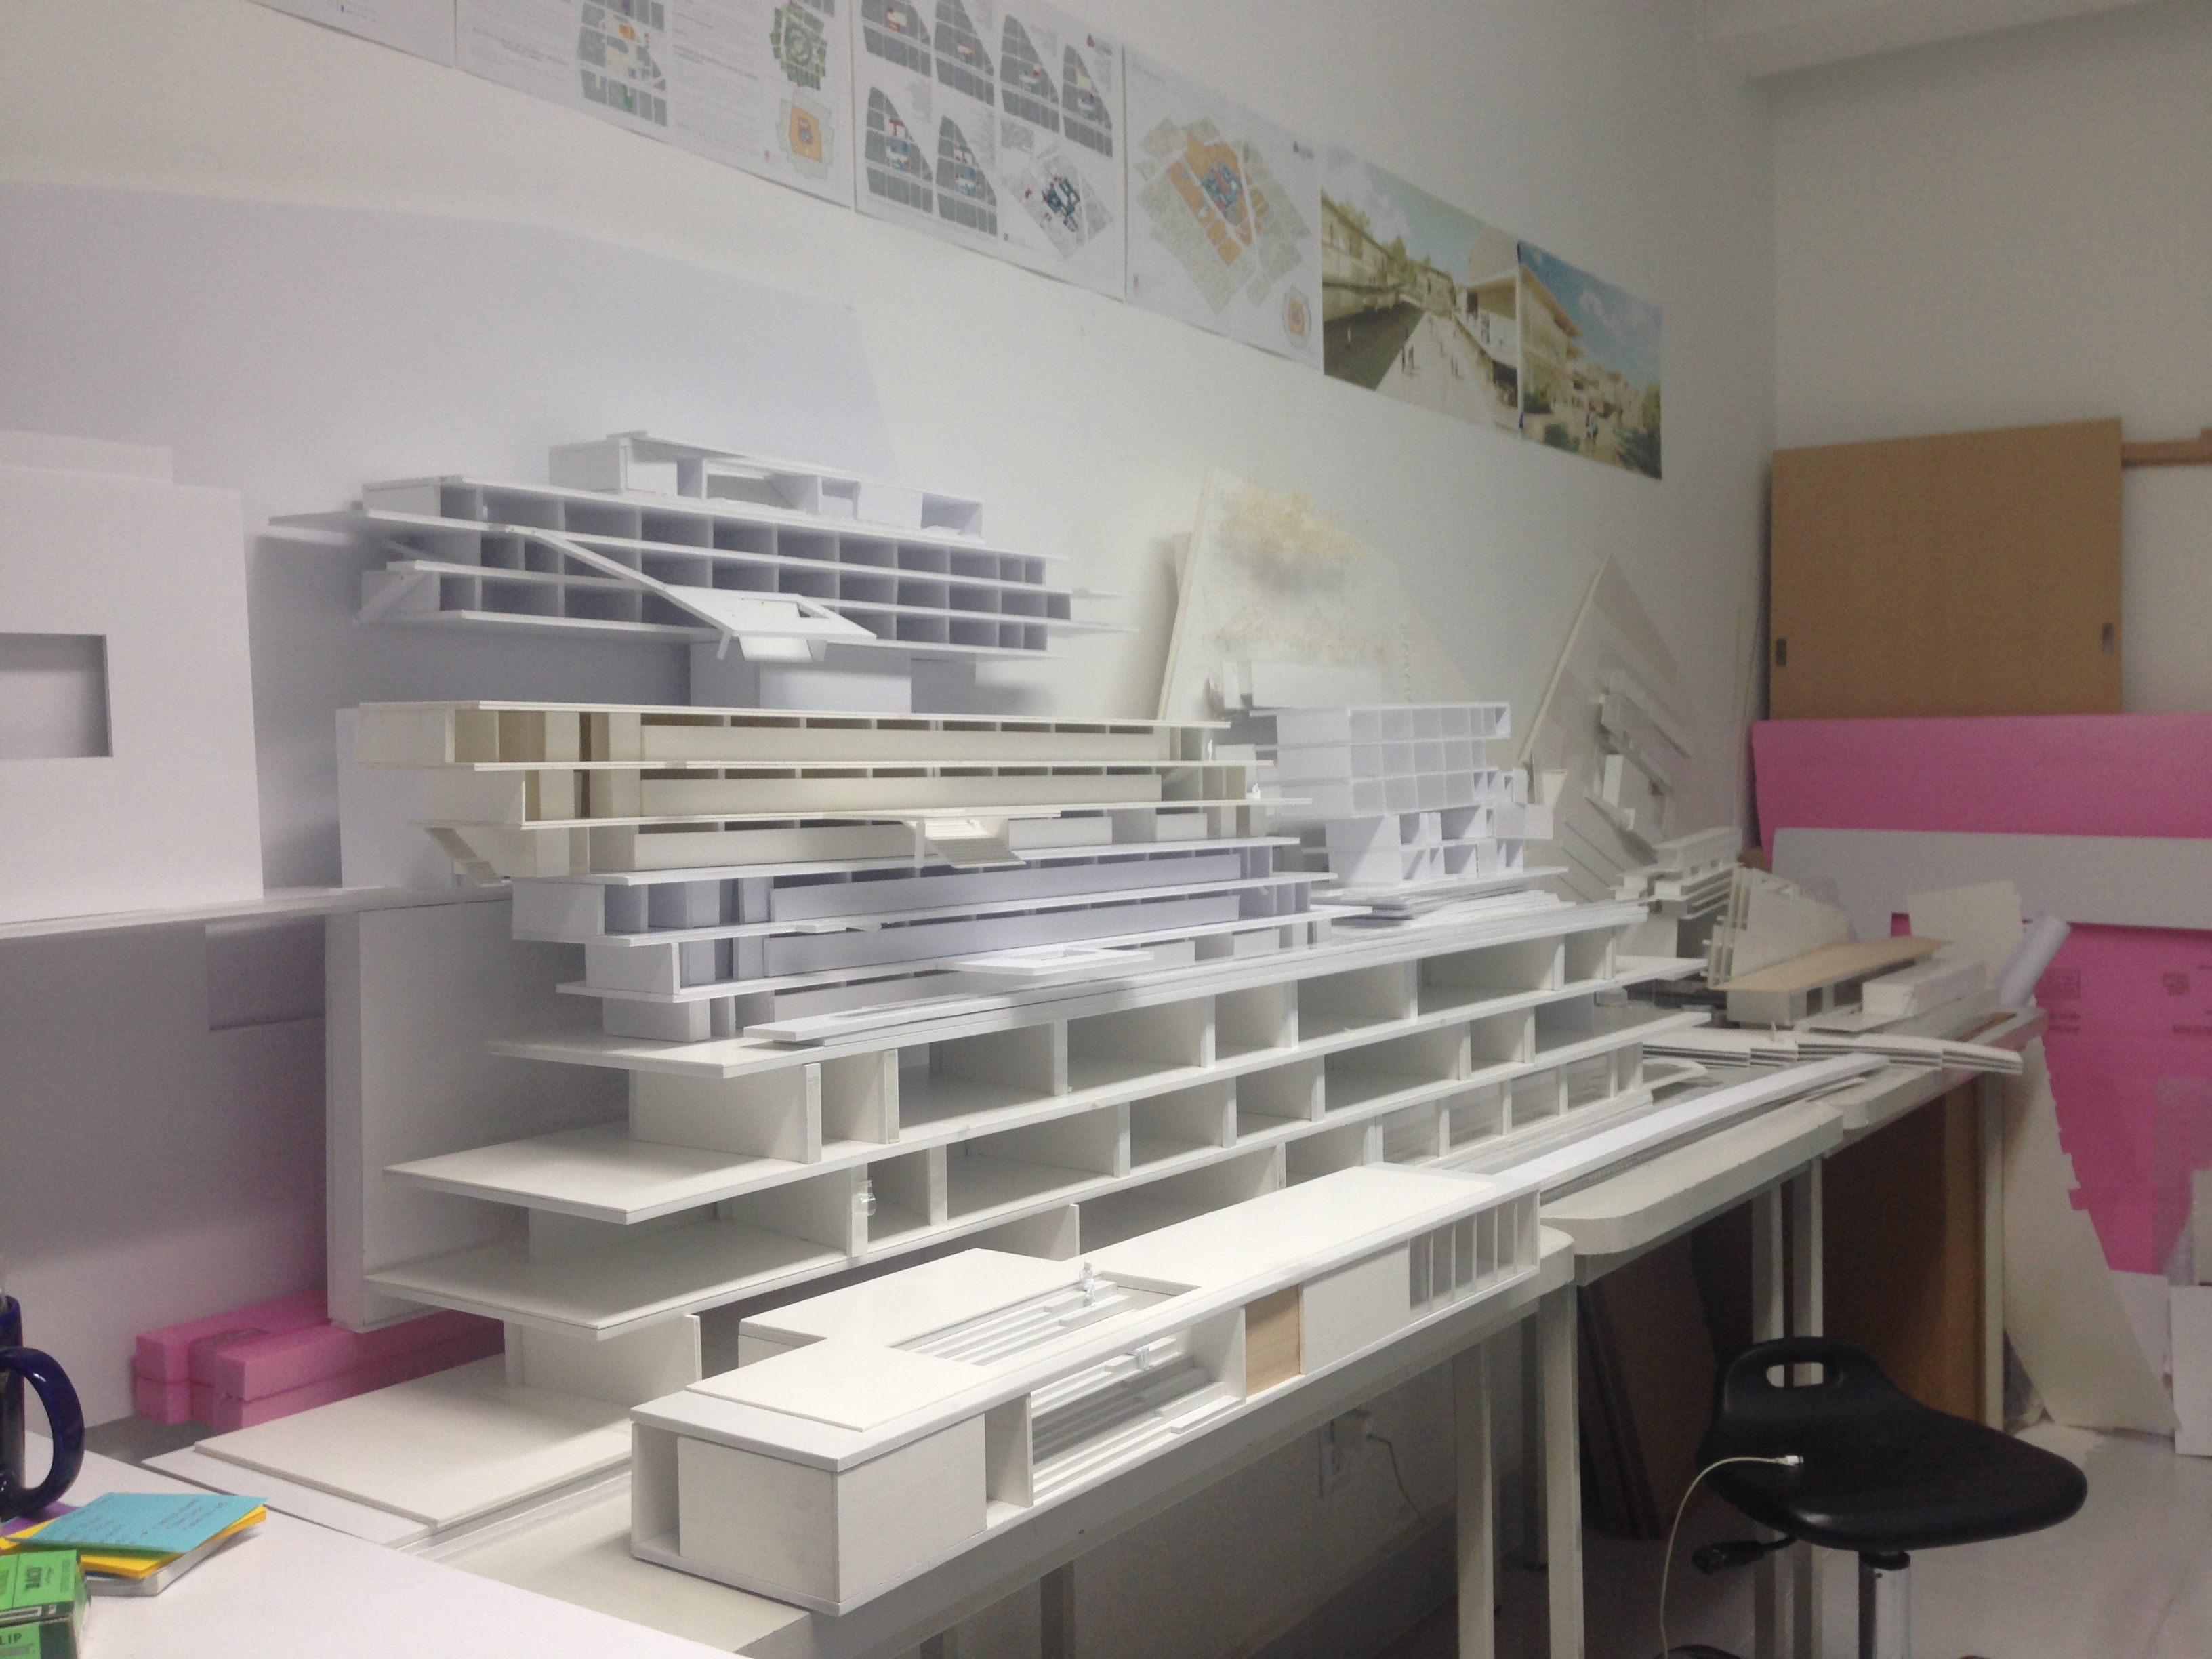 Collection of study models